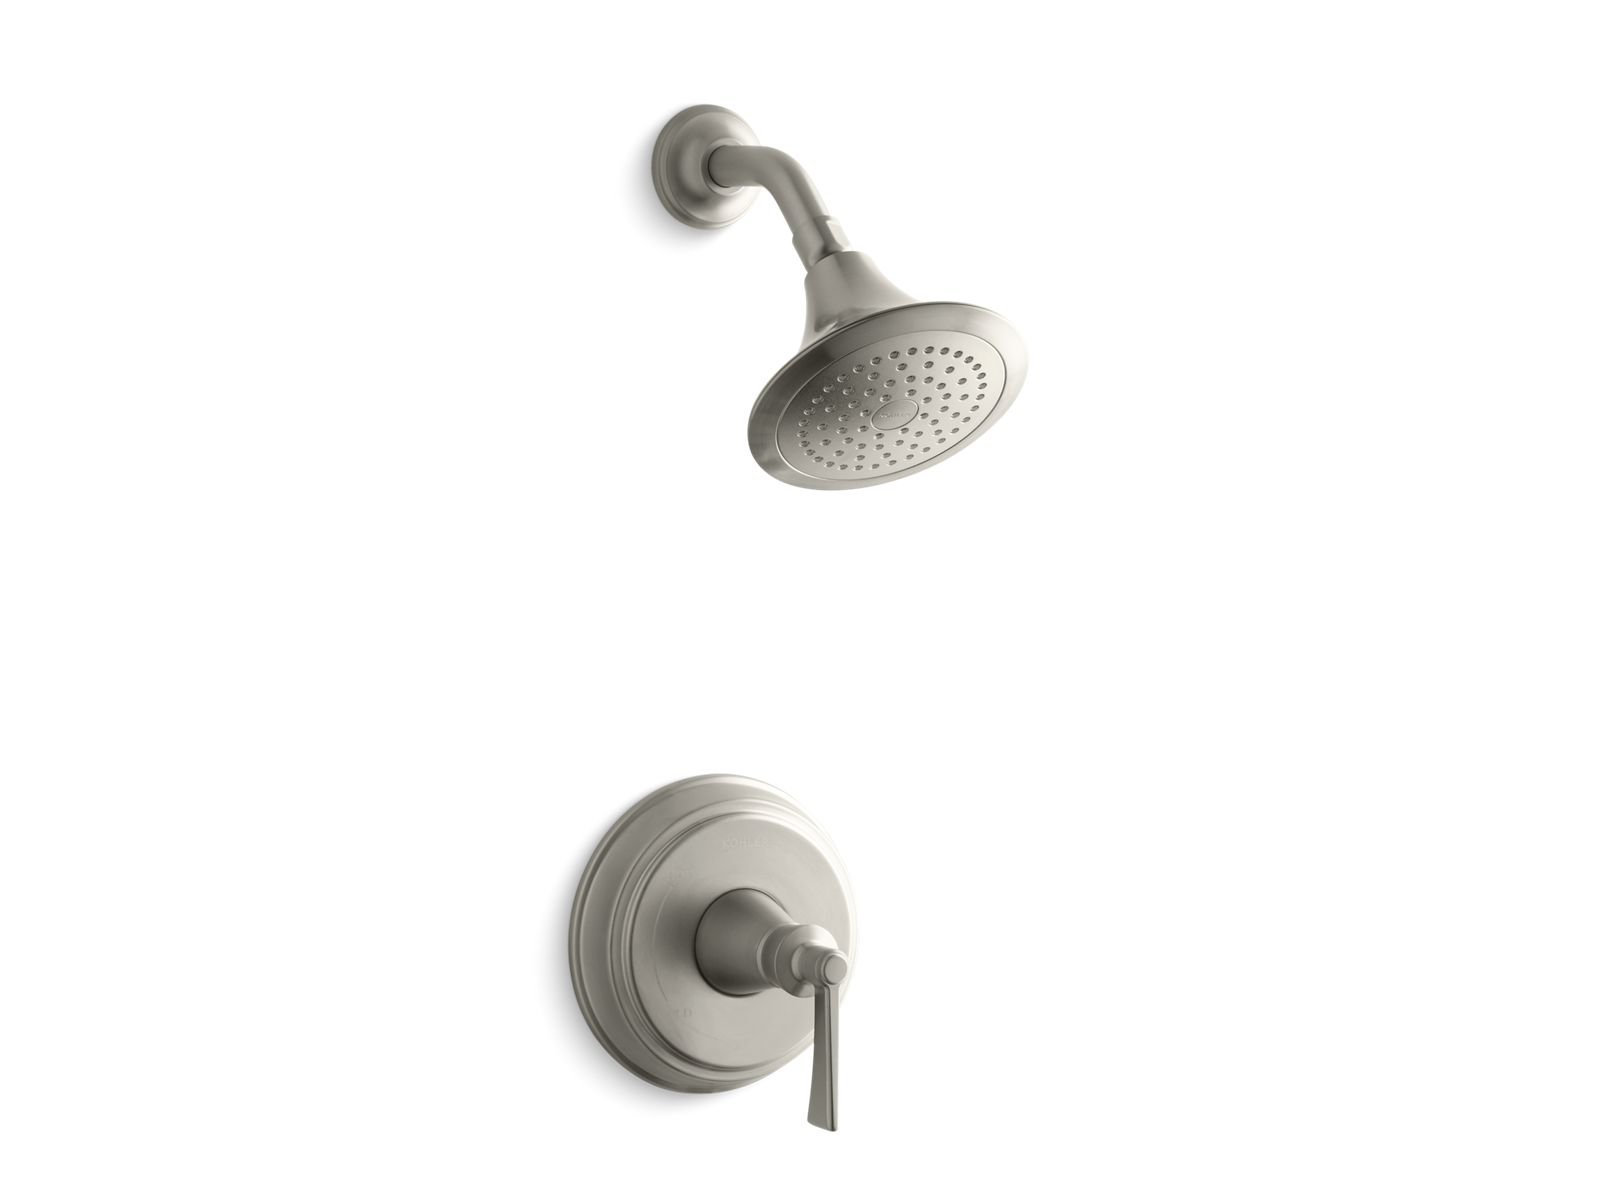 Kohler K-TS11078-4-BN Archer Rite-temp Shower Valve Trim with Lever Handle and 2.5 Gpm Showerhead in Vibrant Brushed Nickel